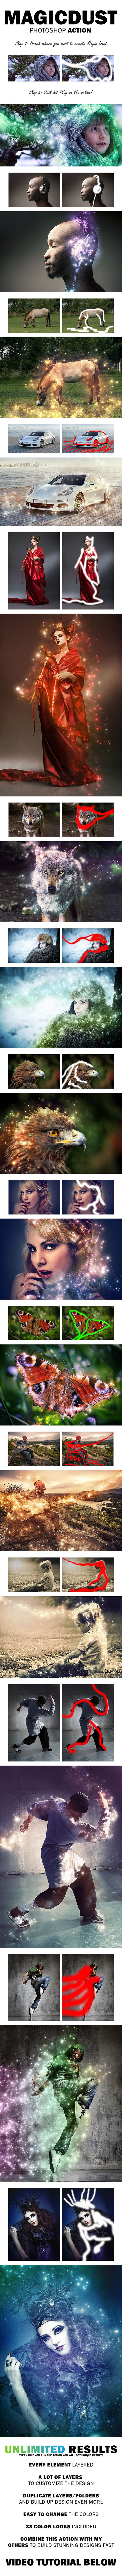 MagicDust Photoshop Action - Photo Effects Actions